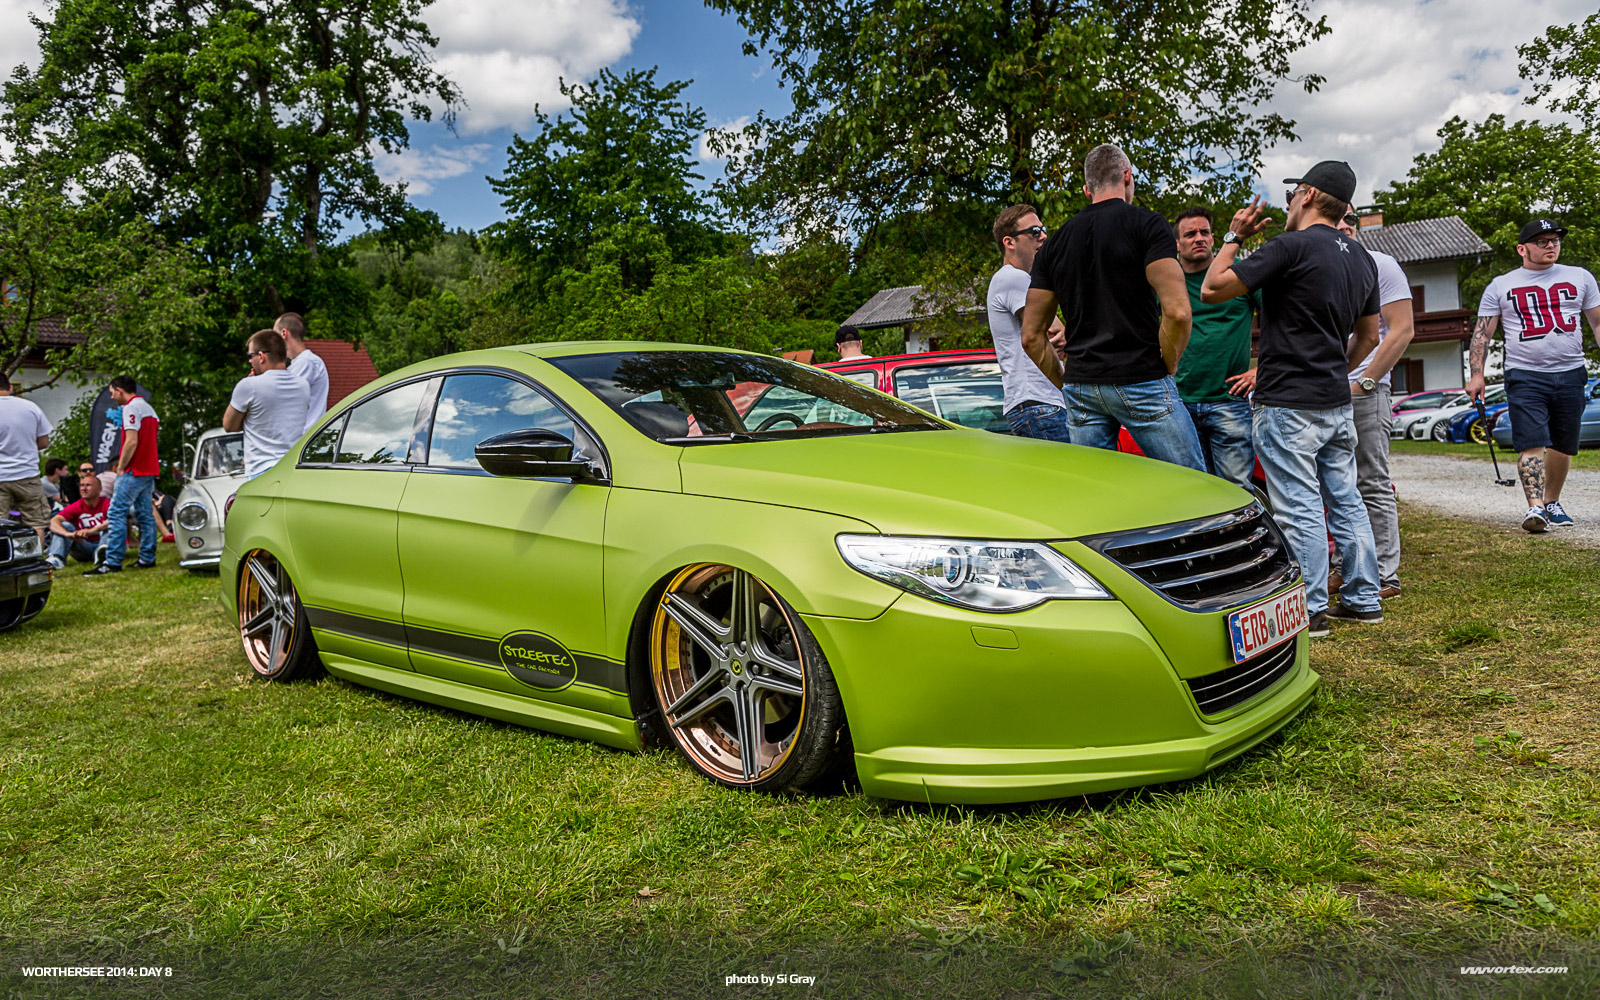 2014-Worthersee-Day-8-Si-Gray-1104